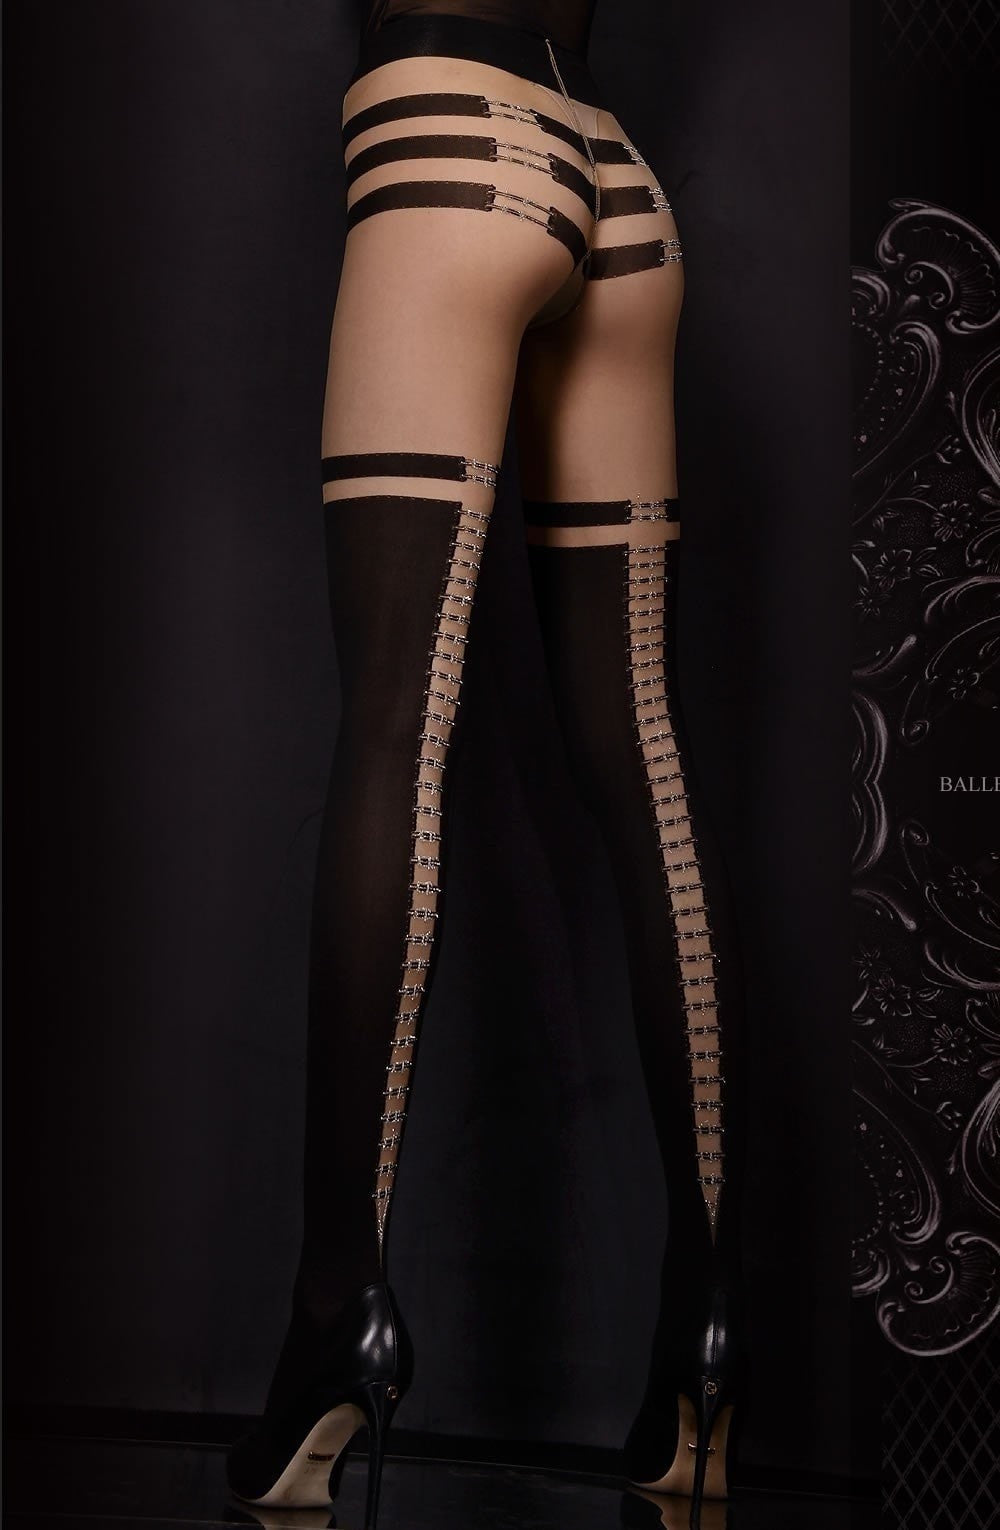 Ballerina Tights 301 (Black/Skin) - Tights - Ballerina - Charm and Lace Boutique